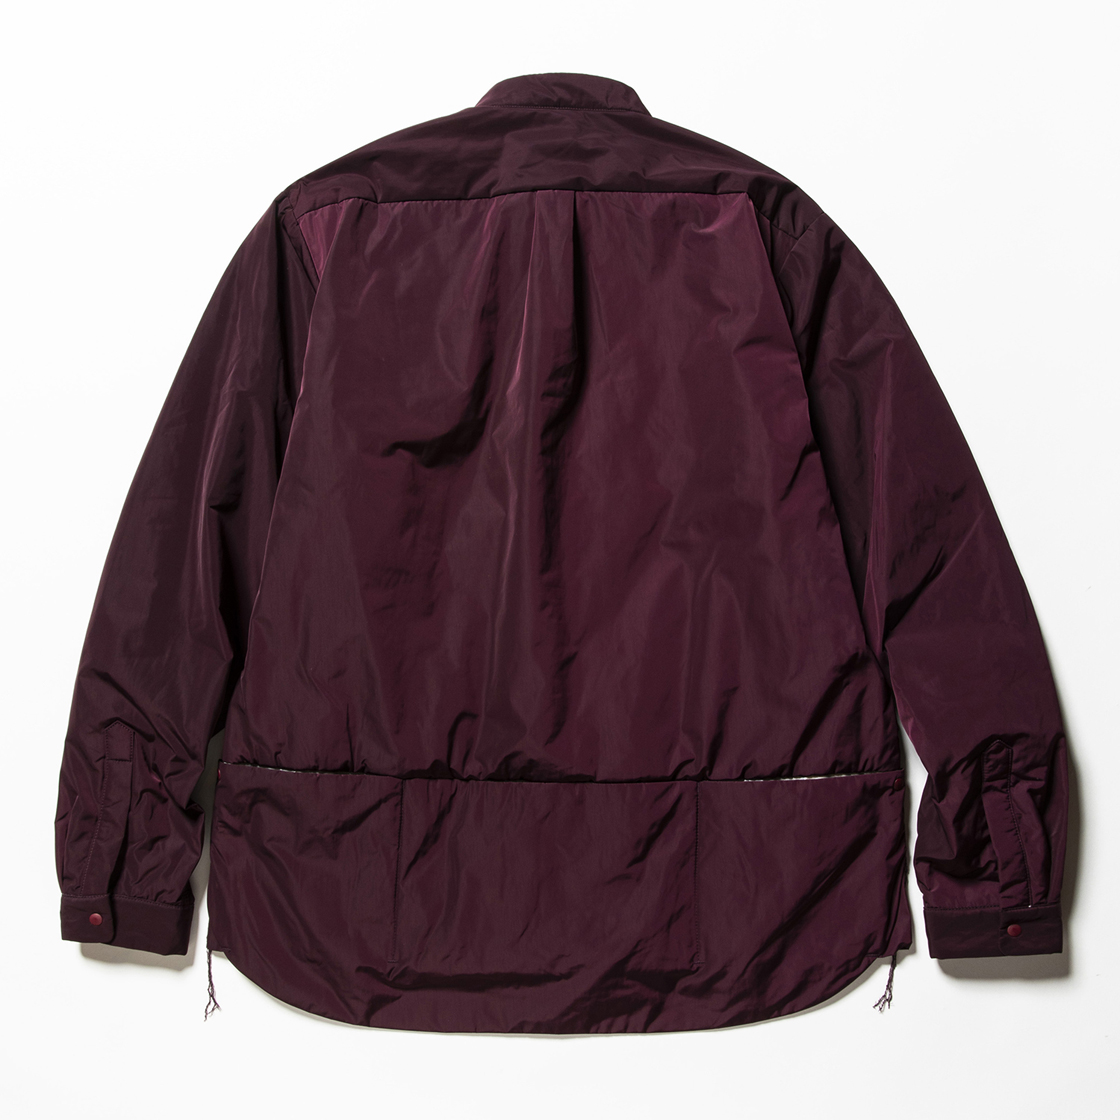 Memory ThinsulateTM Packable SH Burgundy